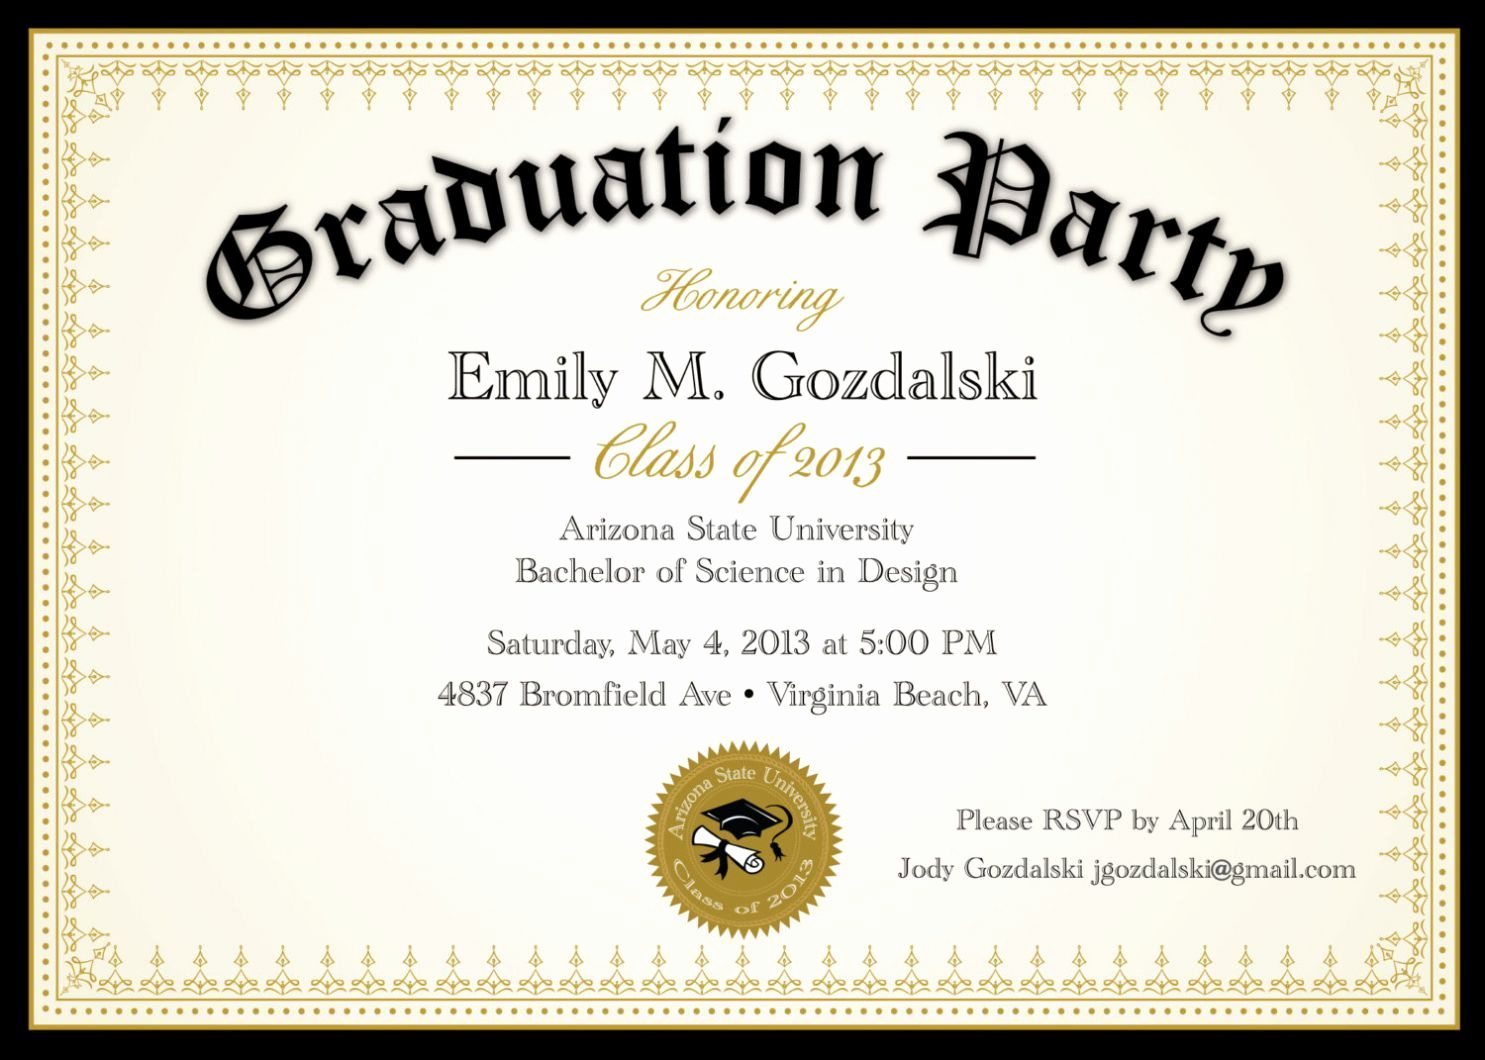 Graduation Invitation Templates Microsoft Publisher Unique Graduation Party Invitation Template Graduation Party